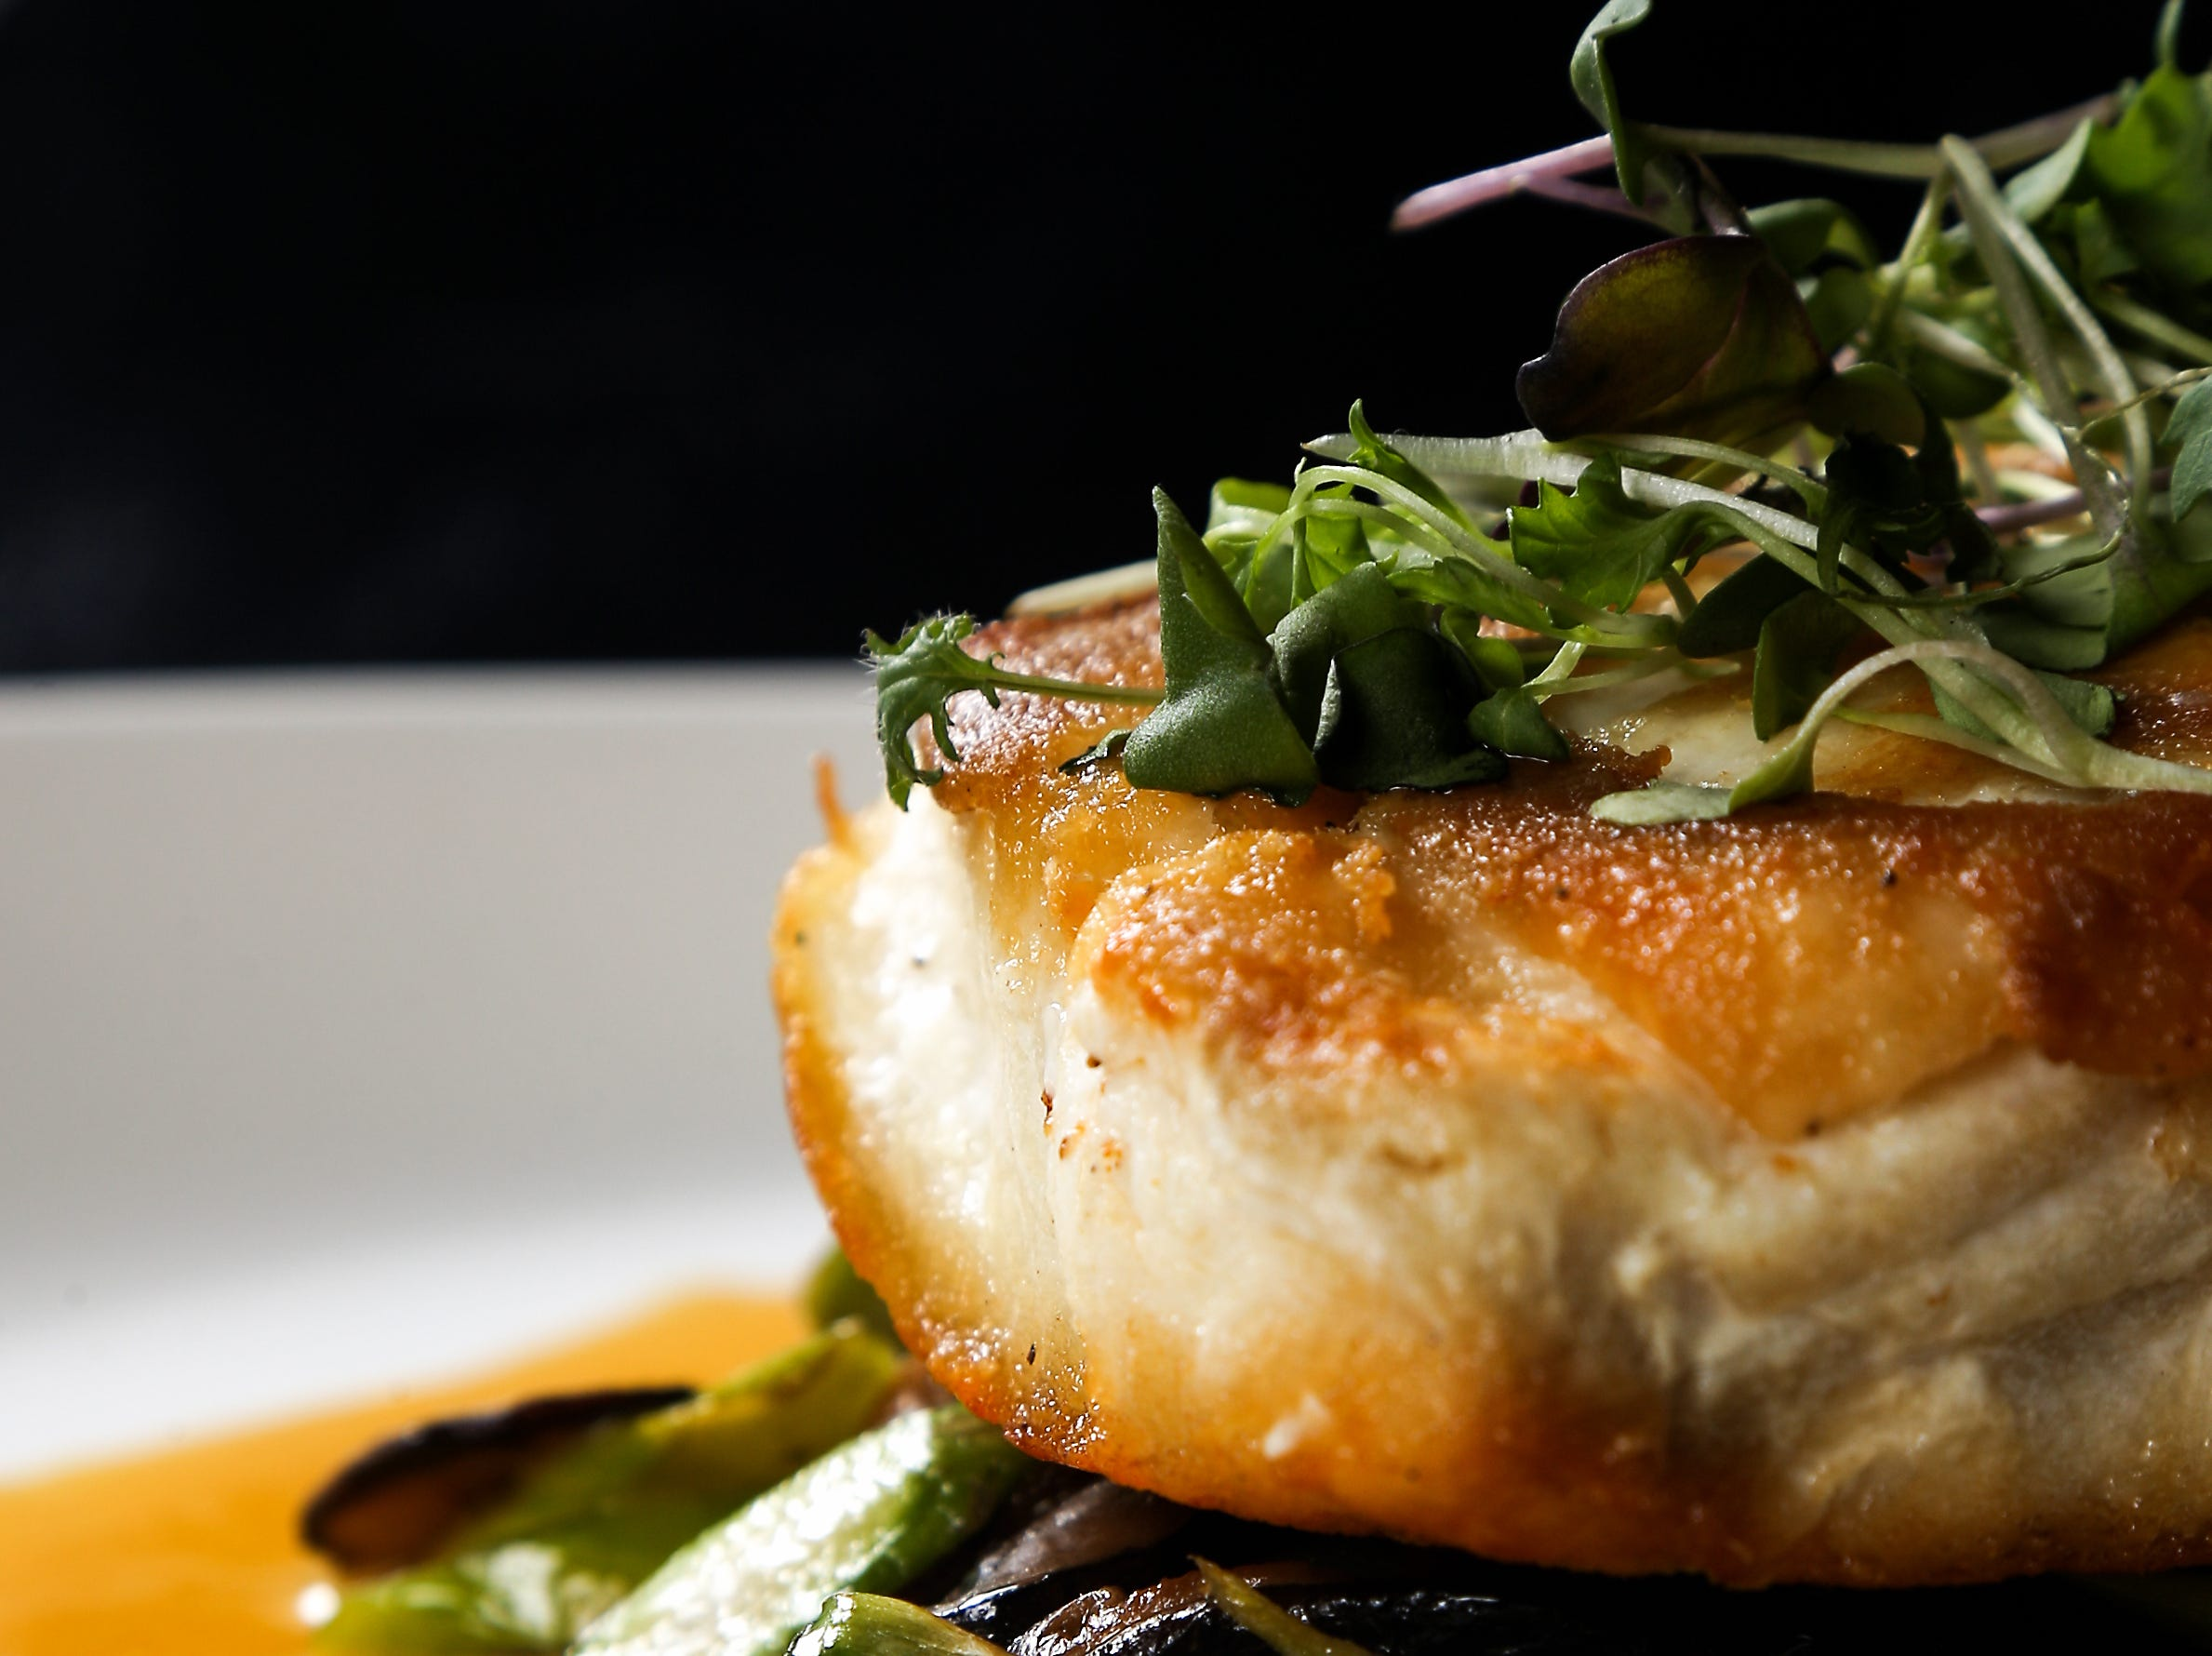 The Atlantic halibut, with asparagus mushroom and orange corn reduction, pictured, Tuesday, Jan. 15, 2019,at Galla Park restaurant at The Banks in Cincinnati.